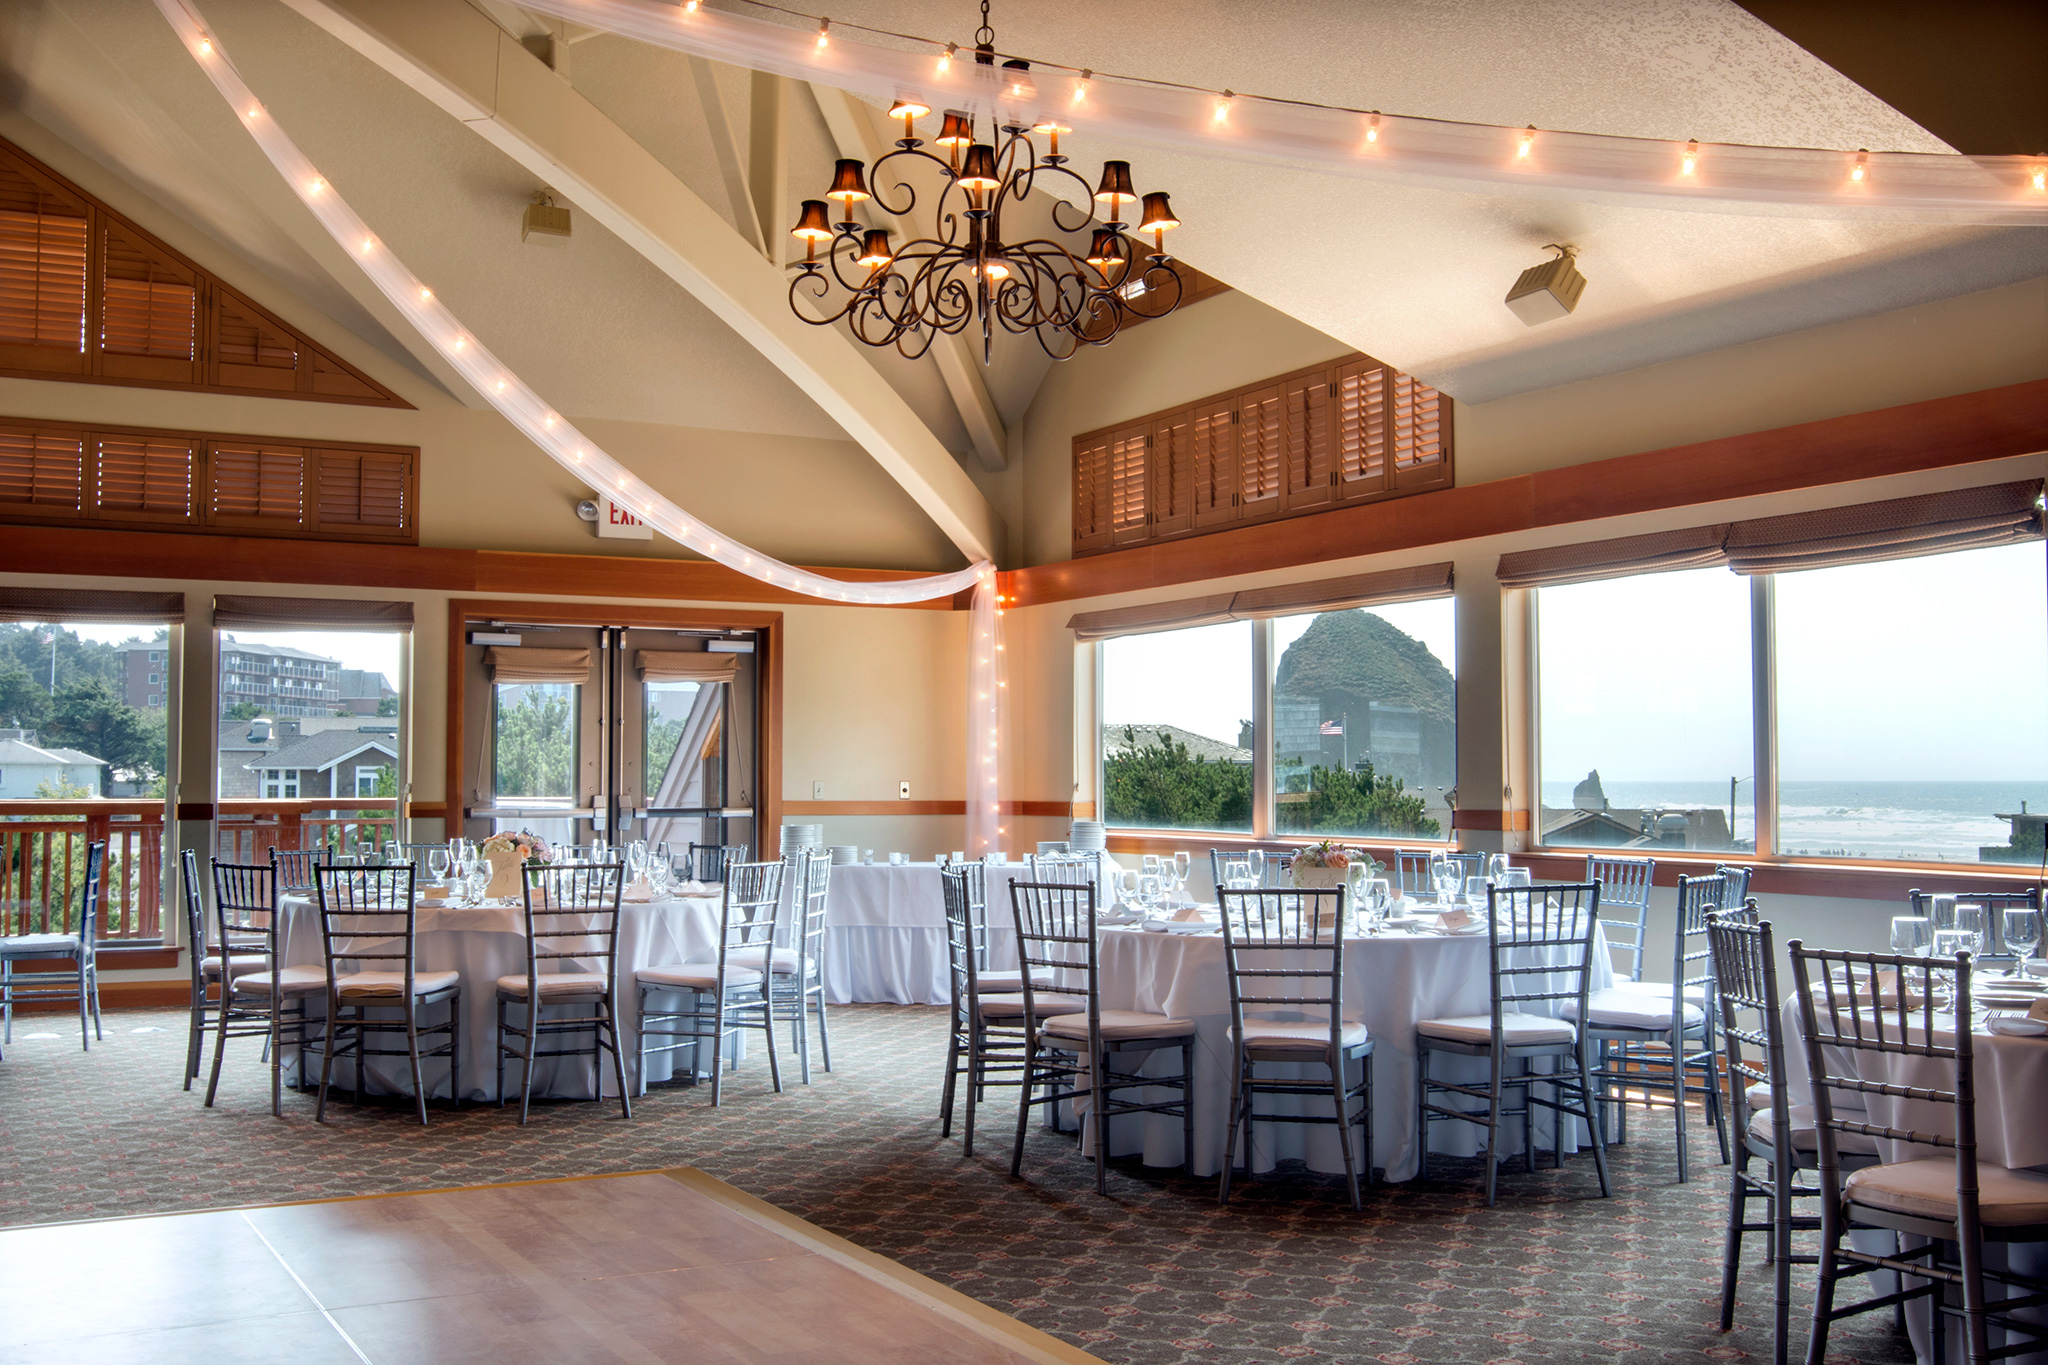 cannon wedding venues surfsand resort